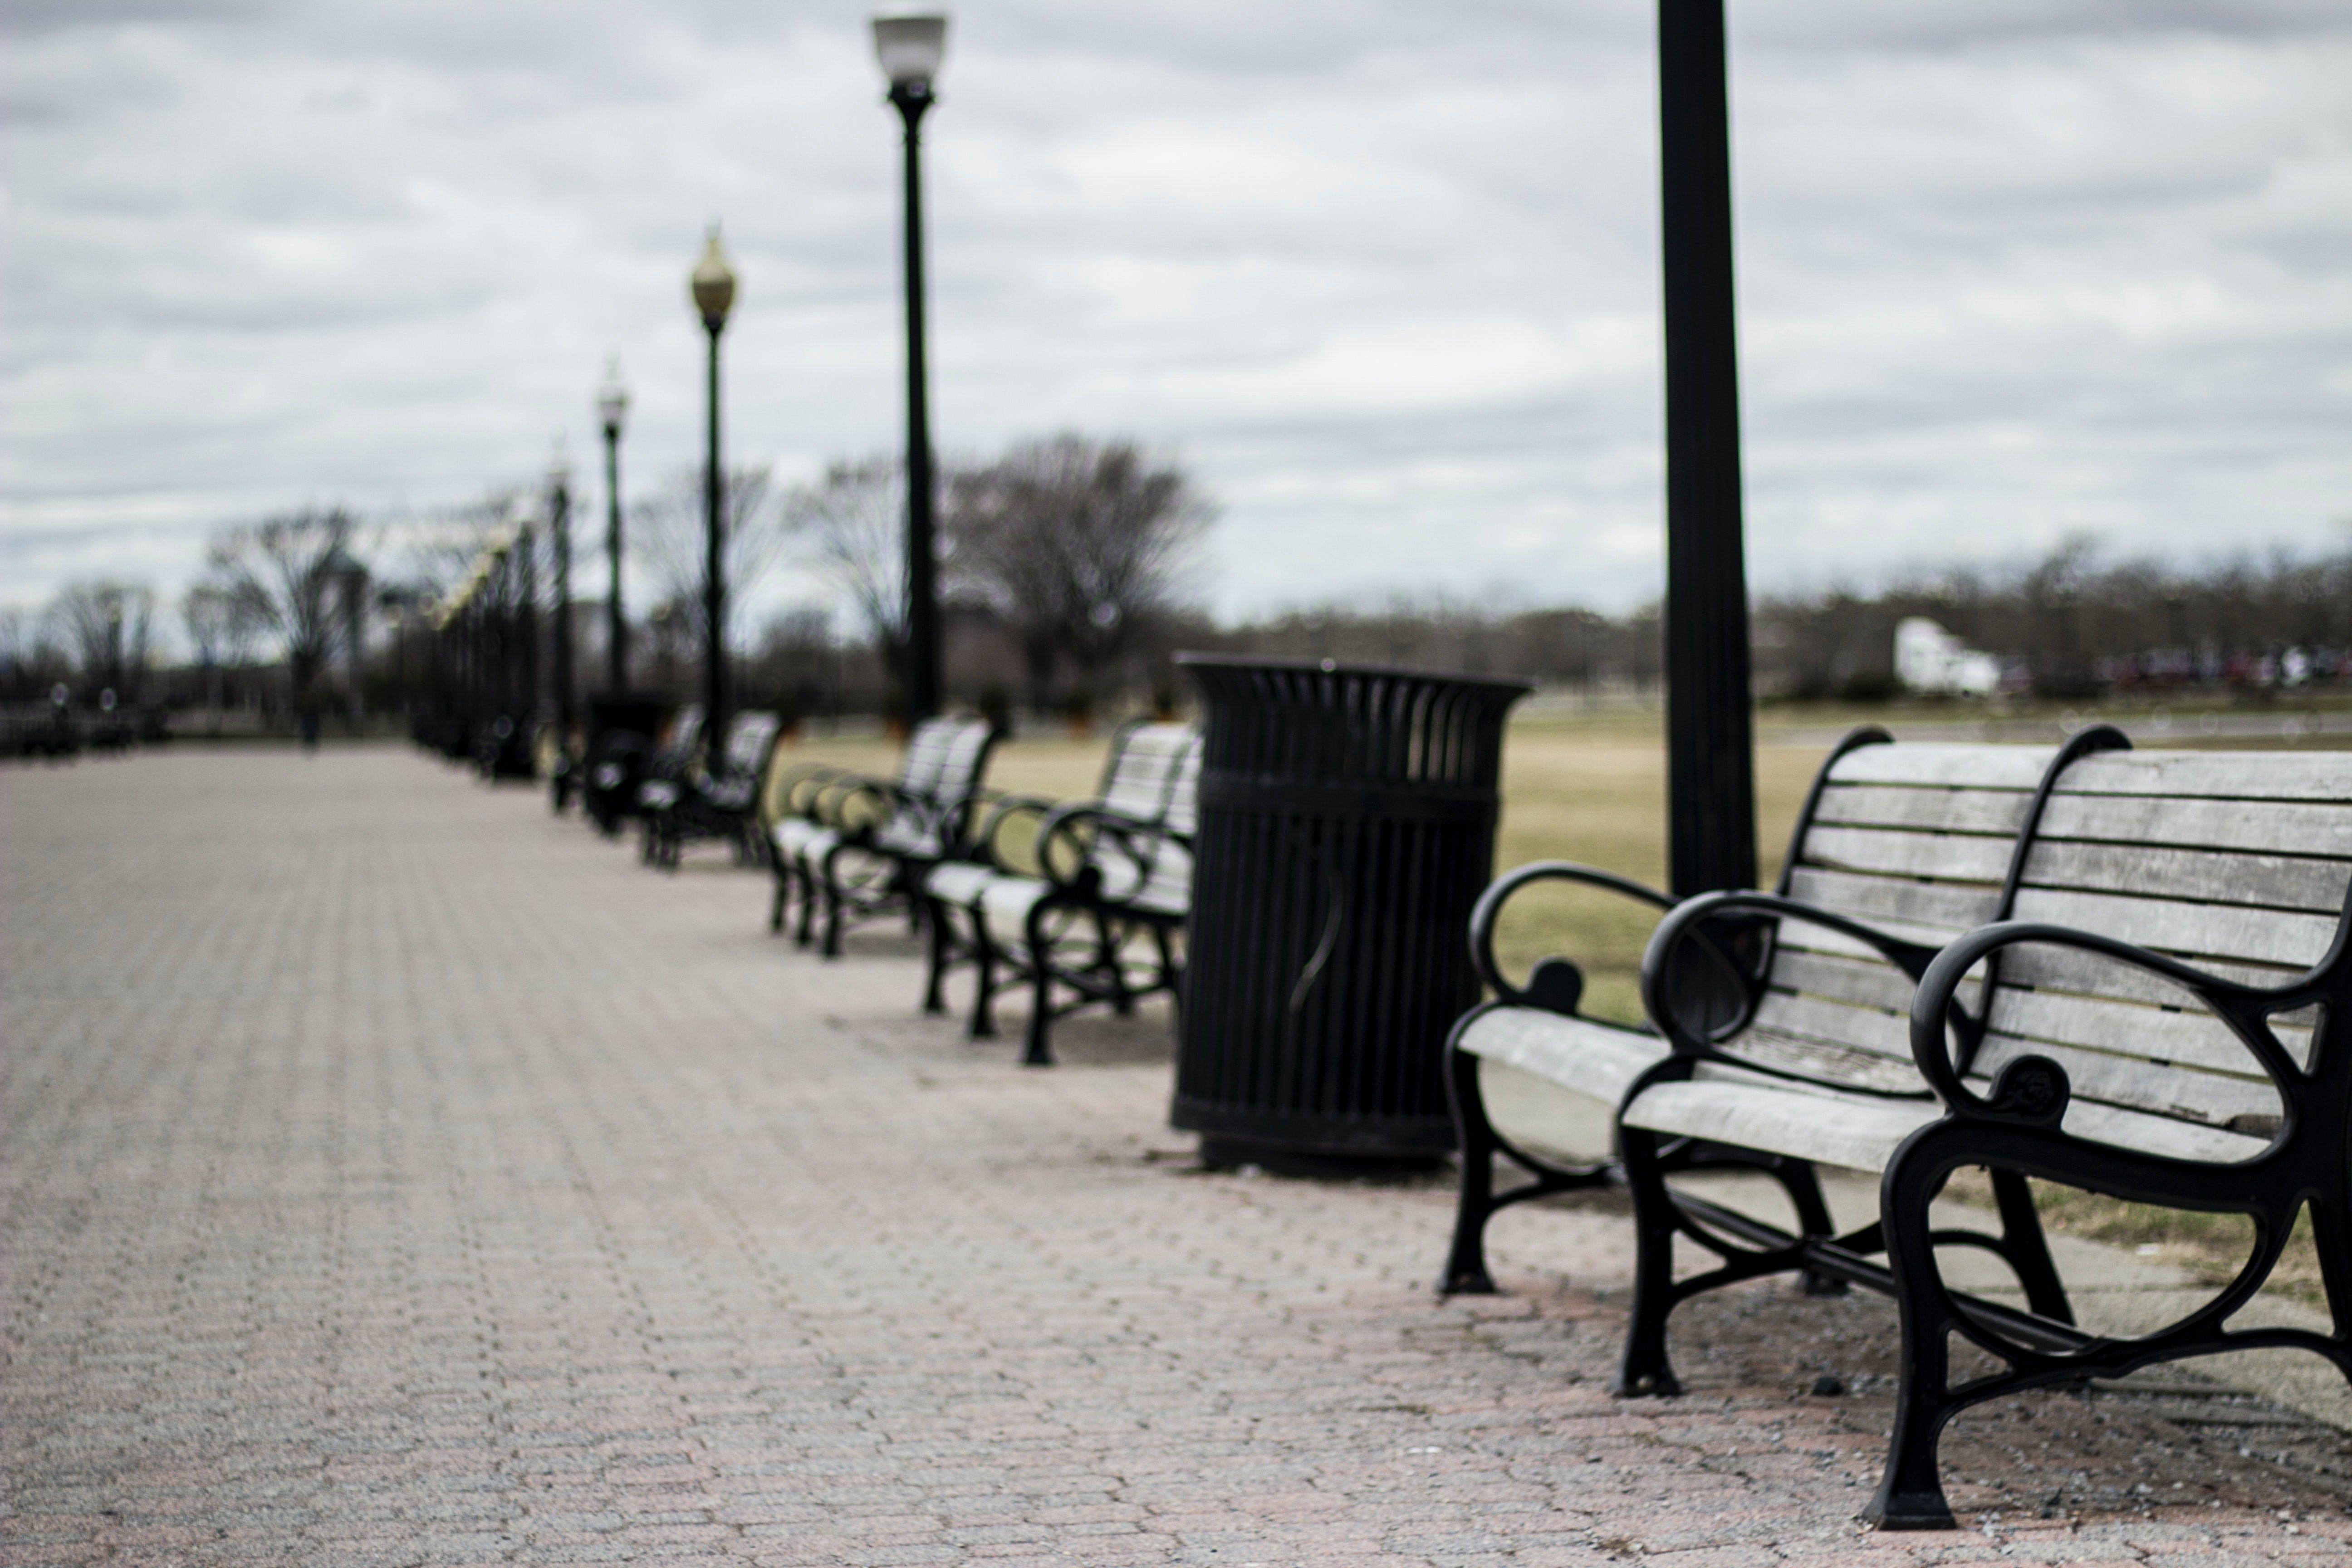 I listened to Annette tell her story while we were seated at a park bench. | Source: Unsplash